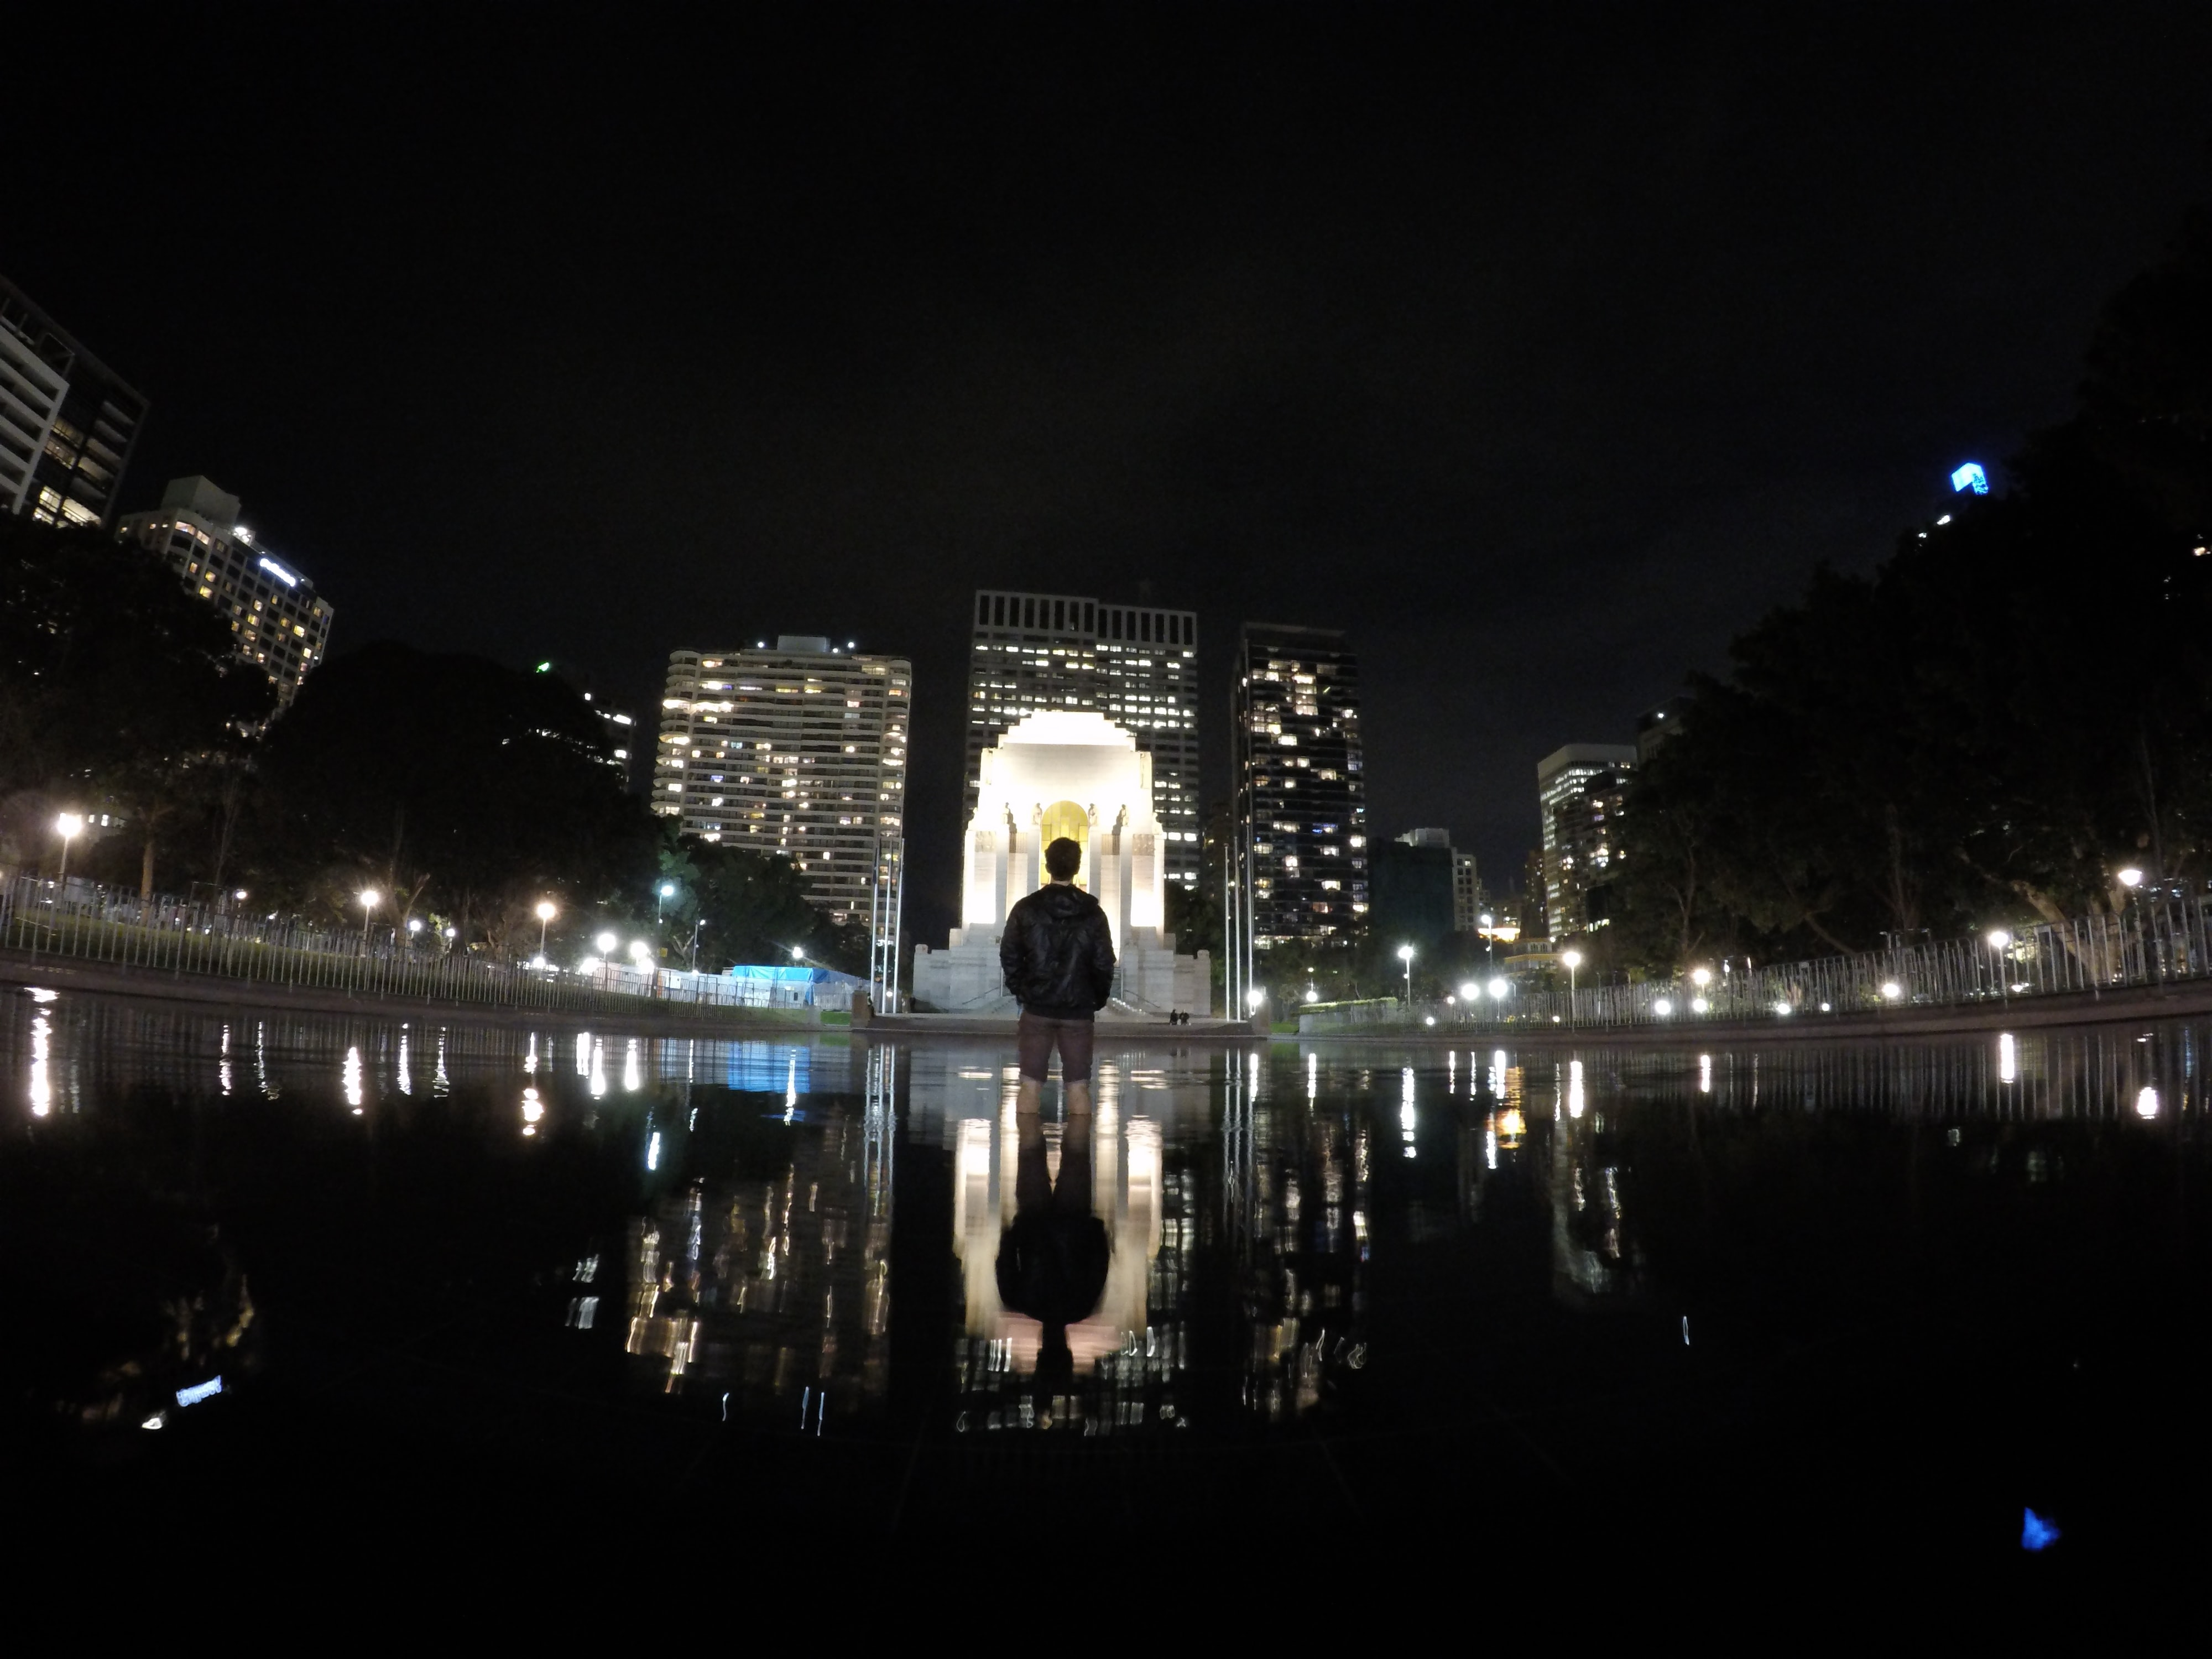 A man wearing a backpack and standing inside a city fountain.